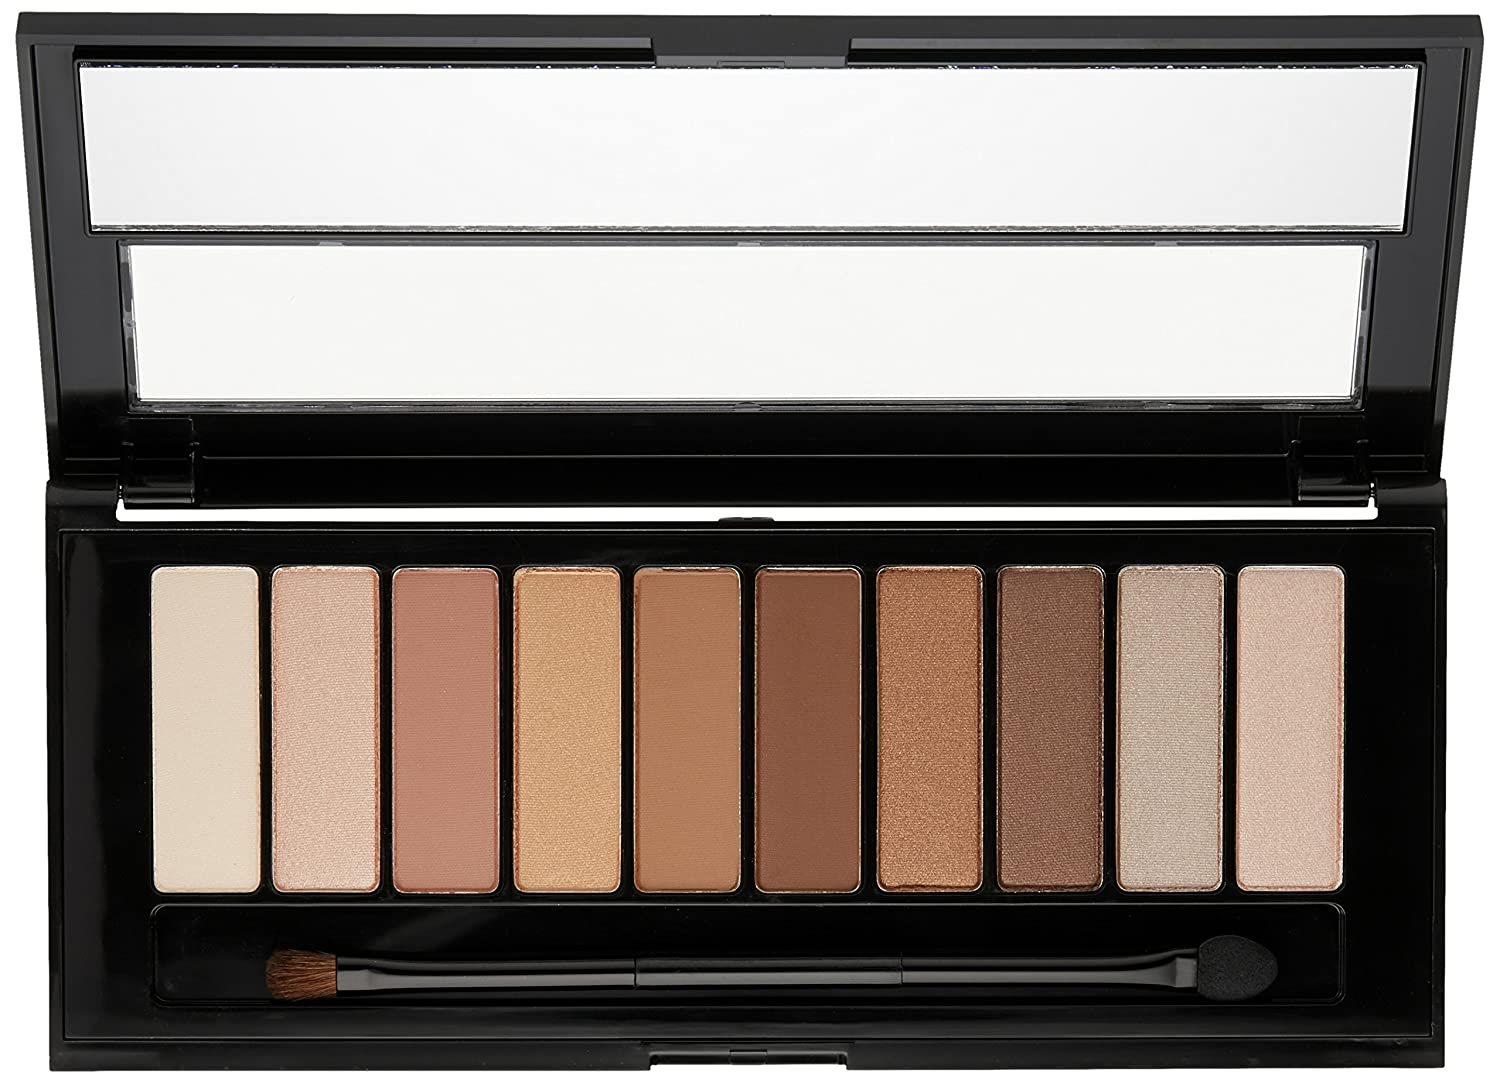 L Oreal Paris Colour Riche La Palette Eyeshadow, Nude 111 0.62 oz